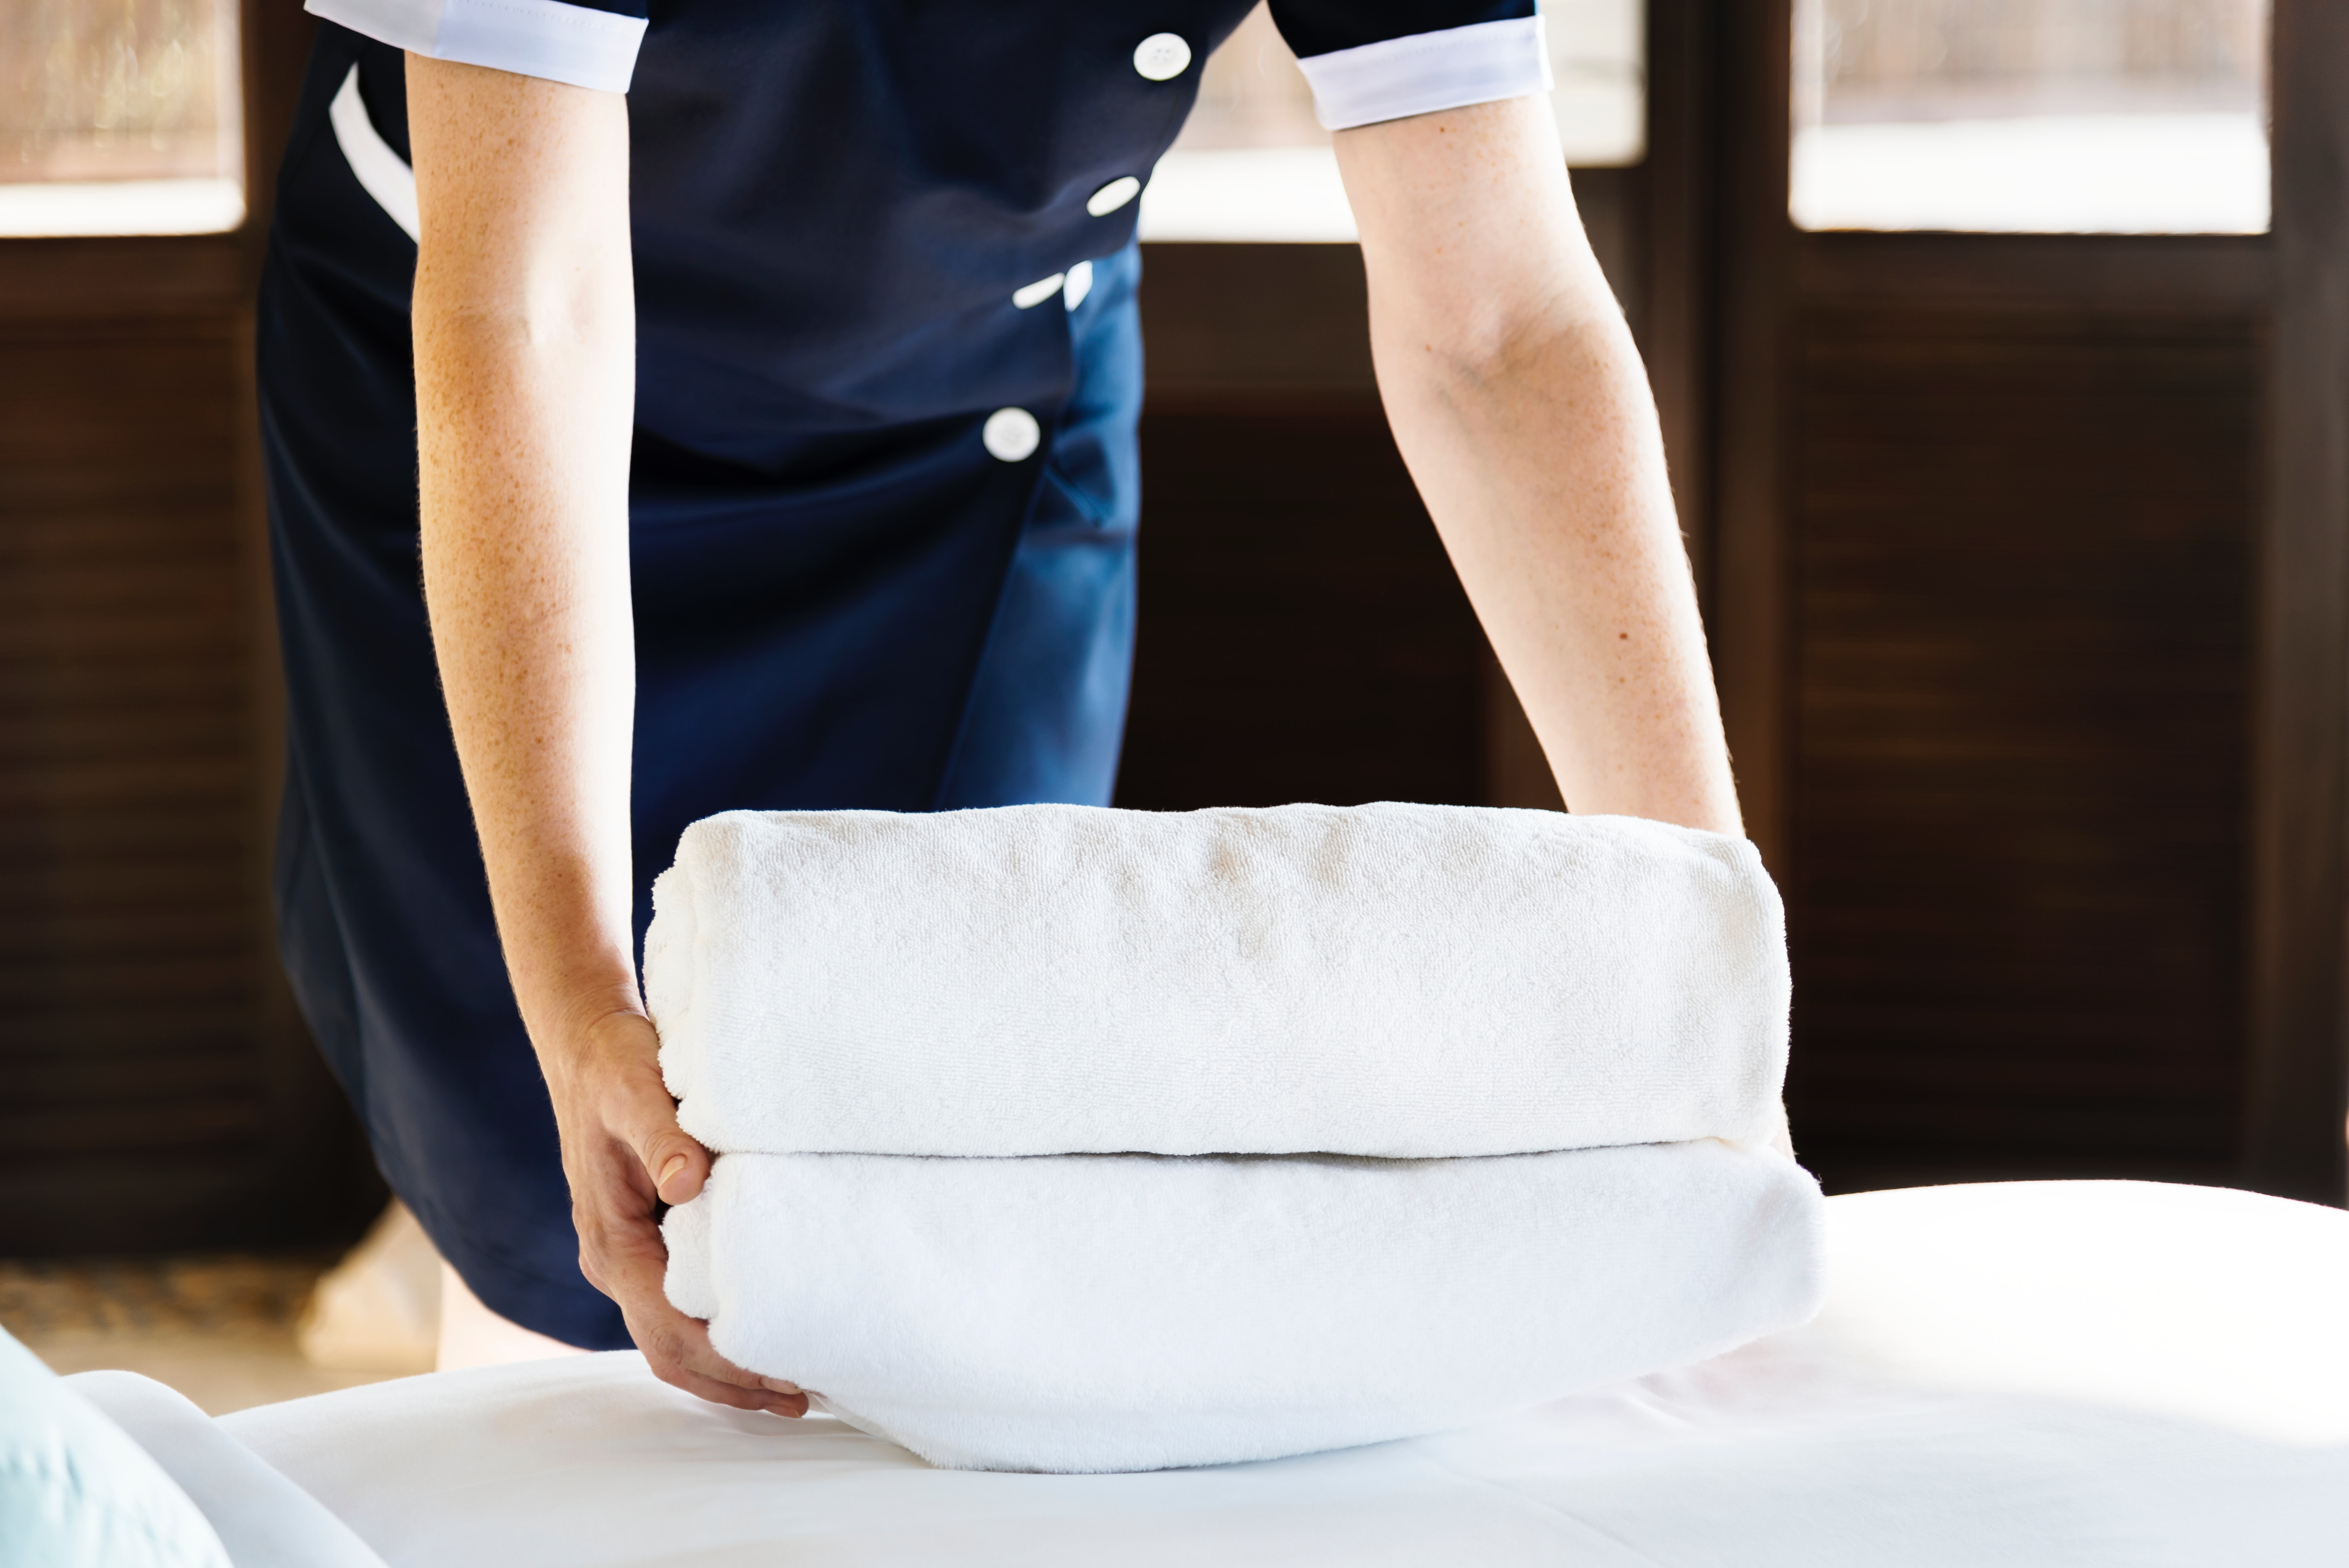 hotel maid in a blue dress uniform placing two folded bath towels on the bed